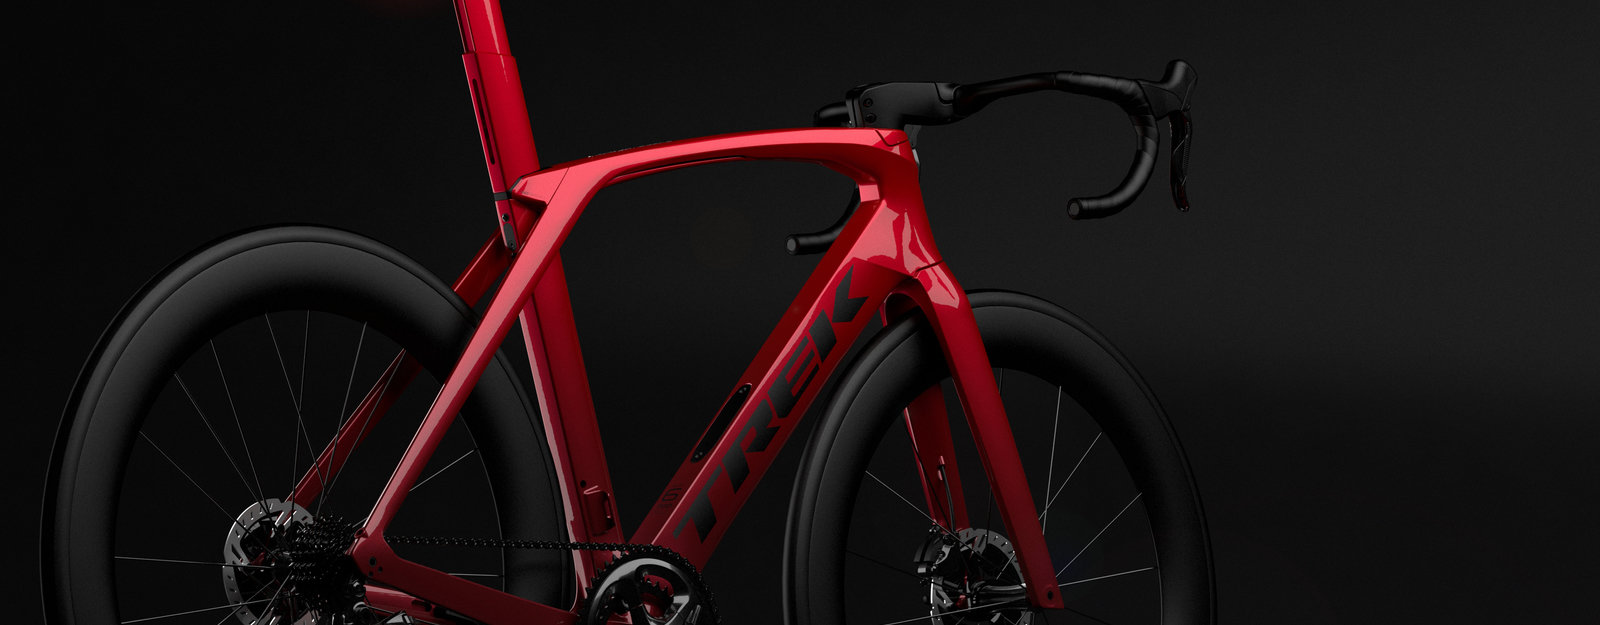 The design story behind the 2019 Trek Madone SLR - Core77